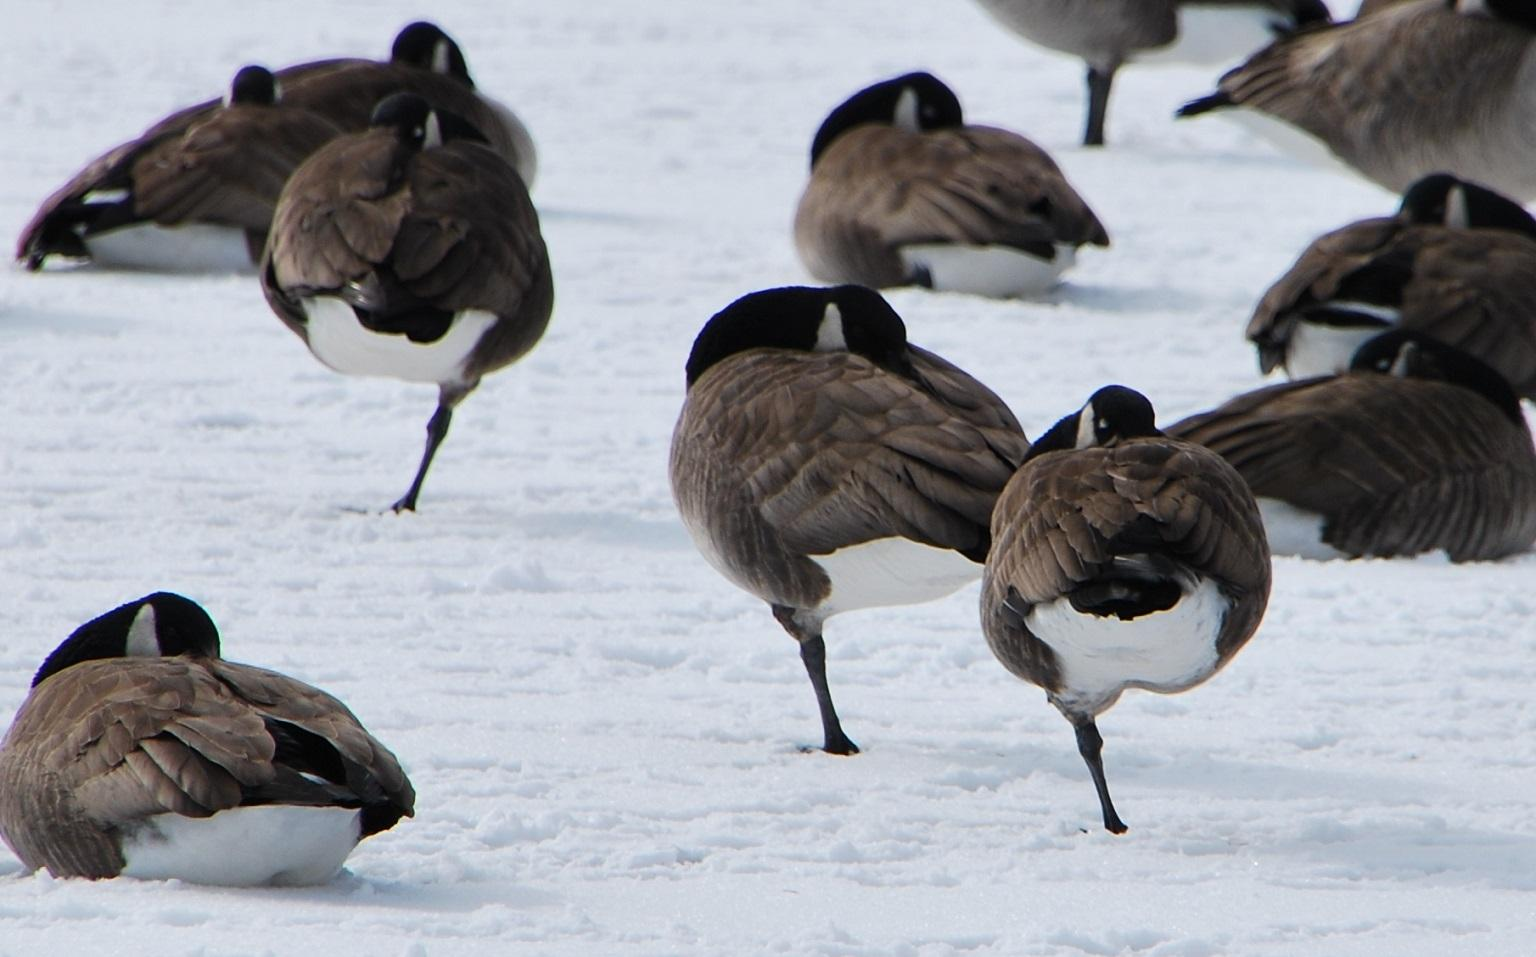 Canada geese conserving body heat by standing on one leg (Ted / Flickr)